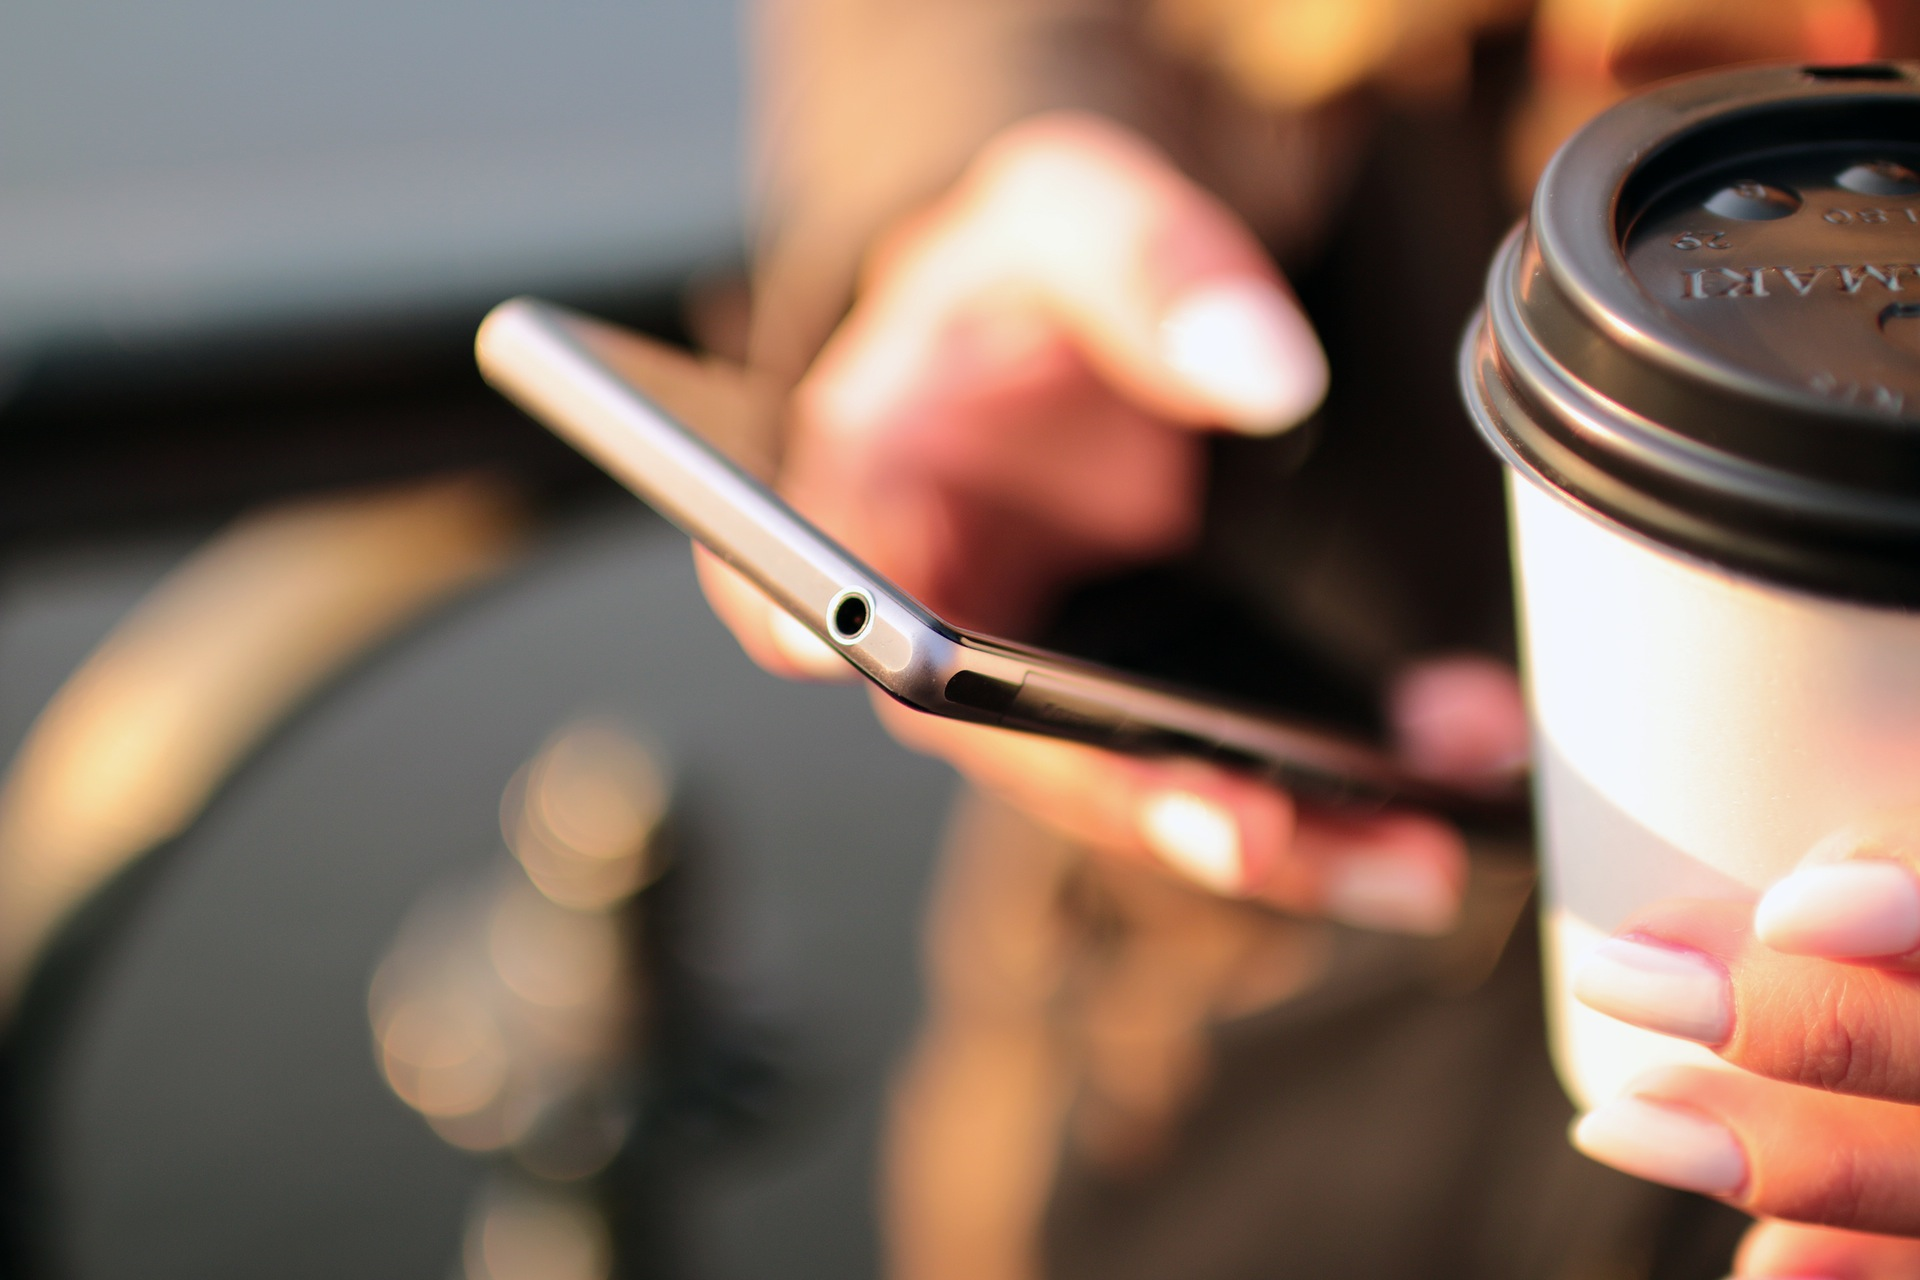 hands-coffee-smartphone-technology (1)